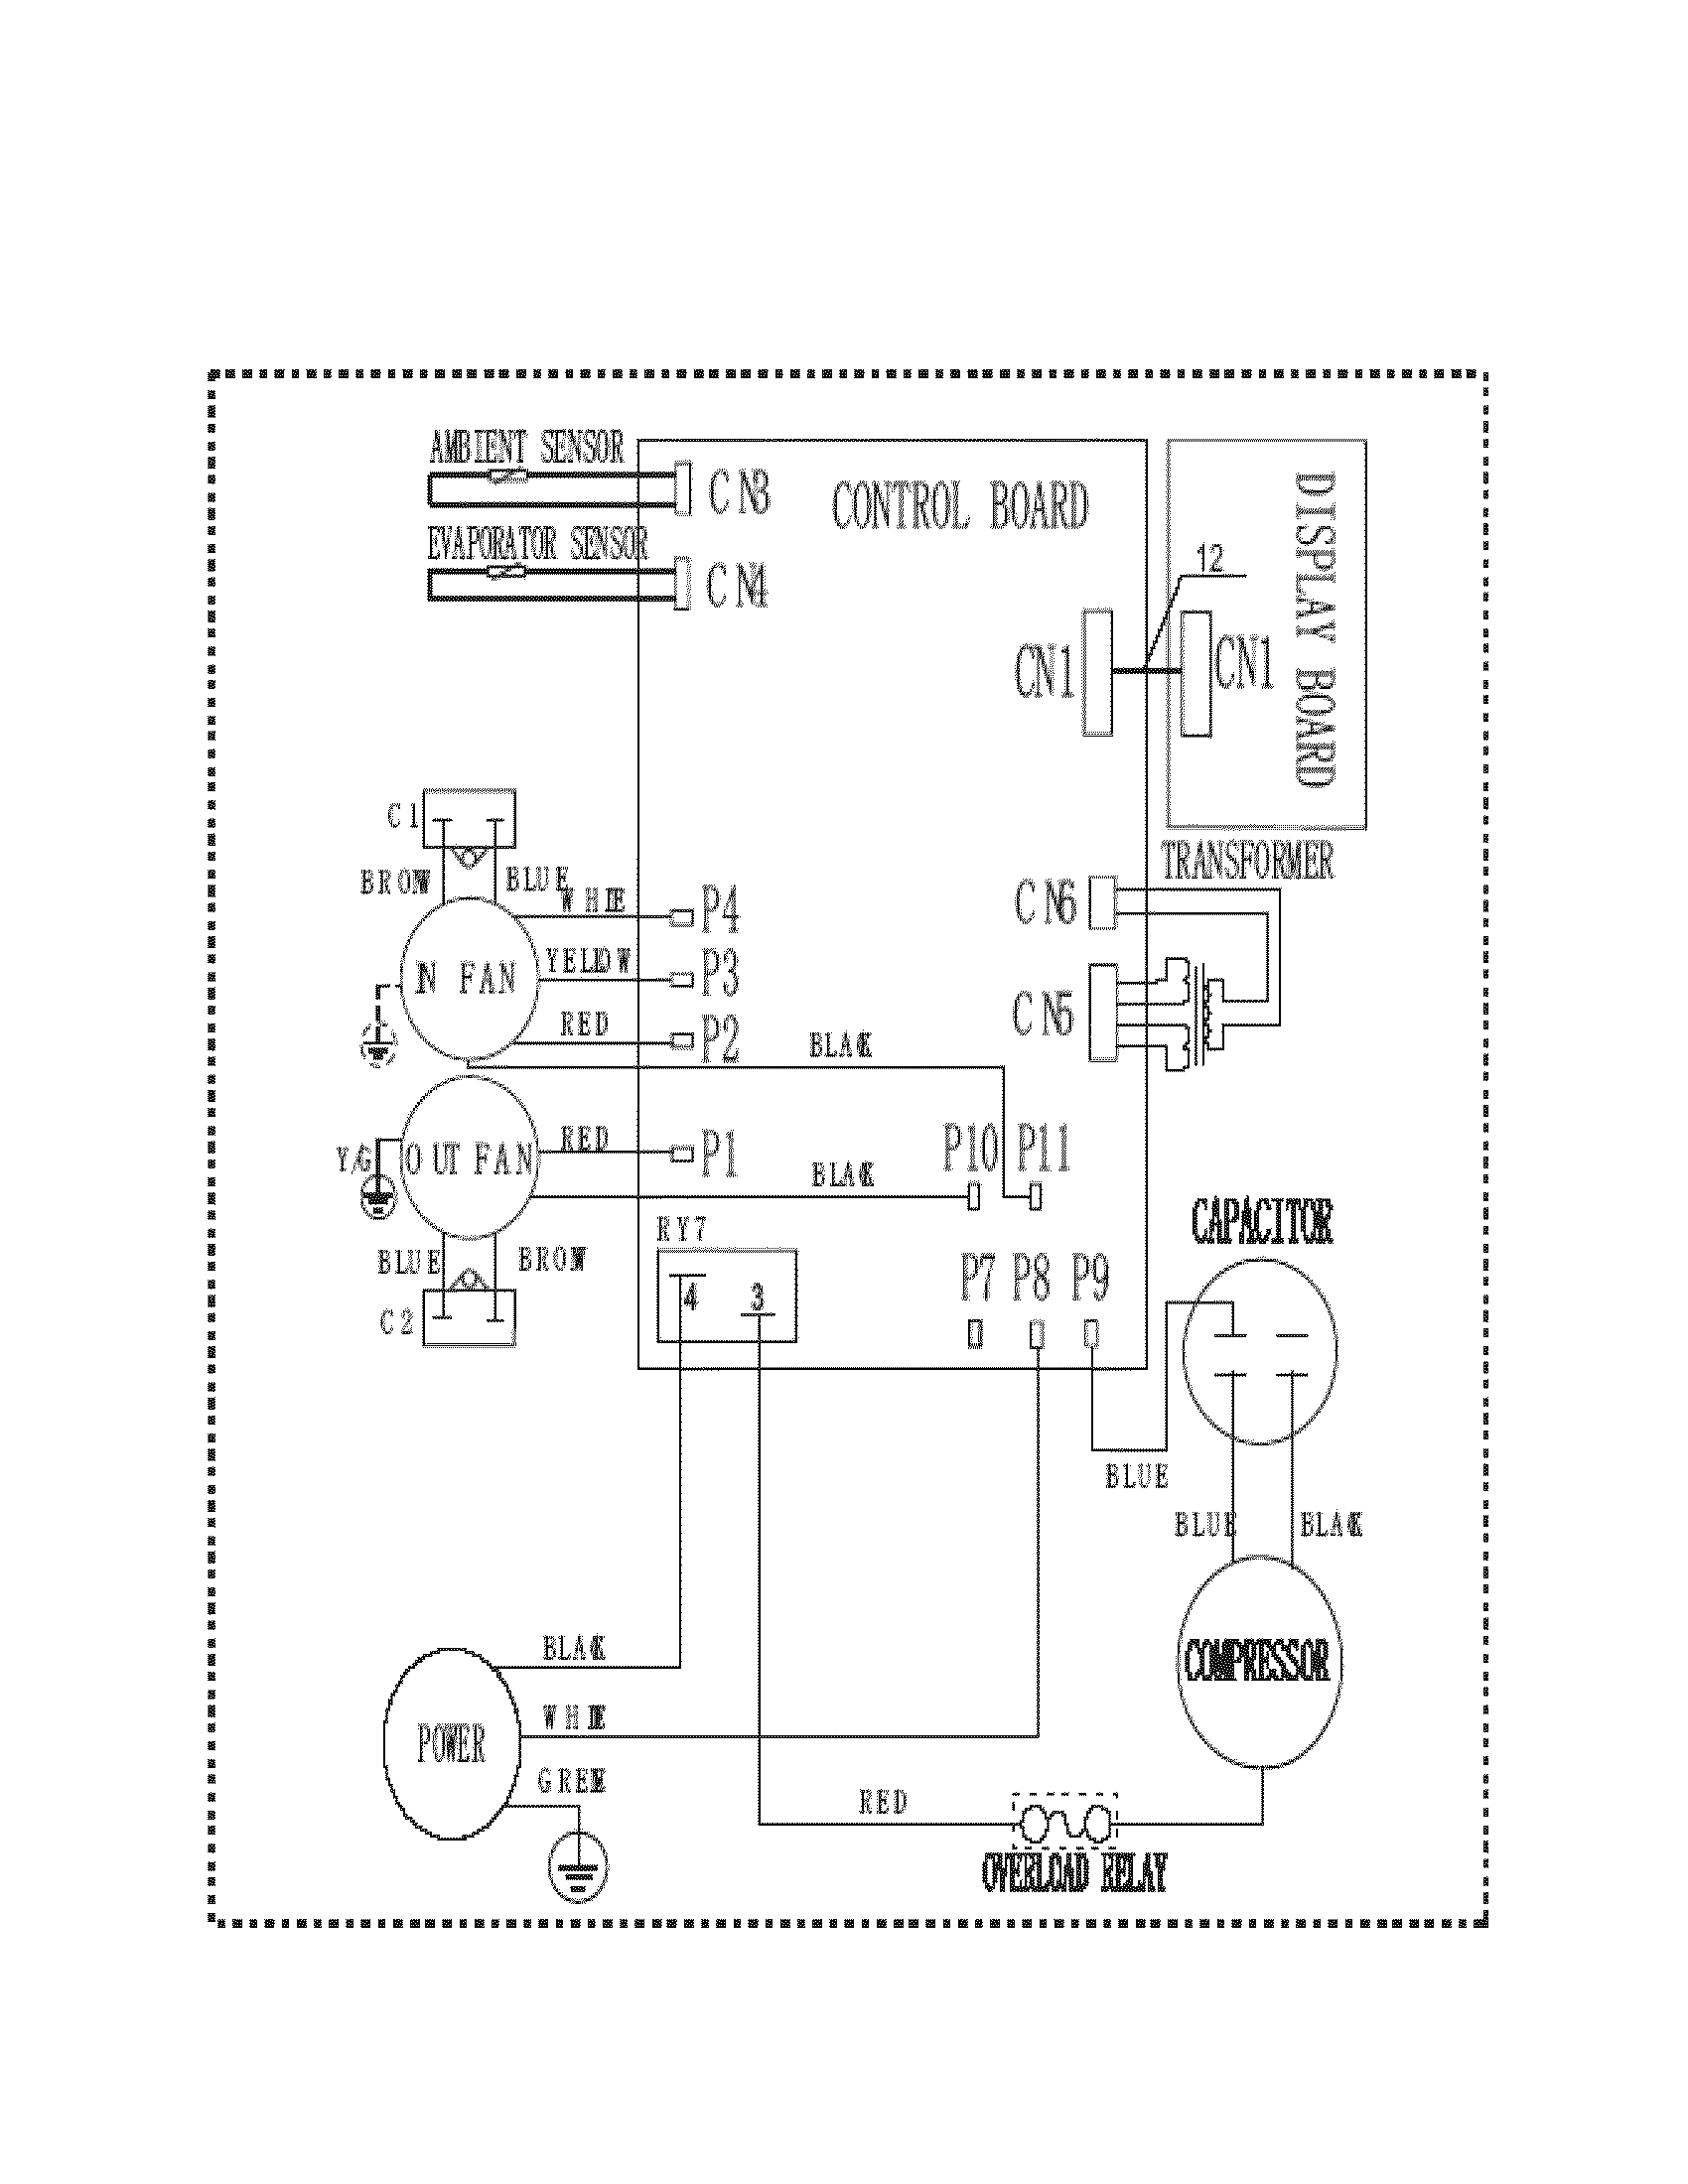 R0707094 00002?resize=665%2C861 trane 239 thermostat wiring diagram trane wiring diagram trane trane weathertron baystat 239 thermostat wiring diagram at crackthecode.co